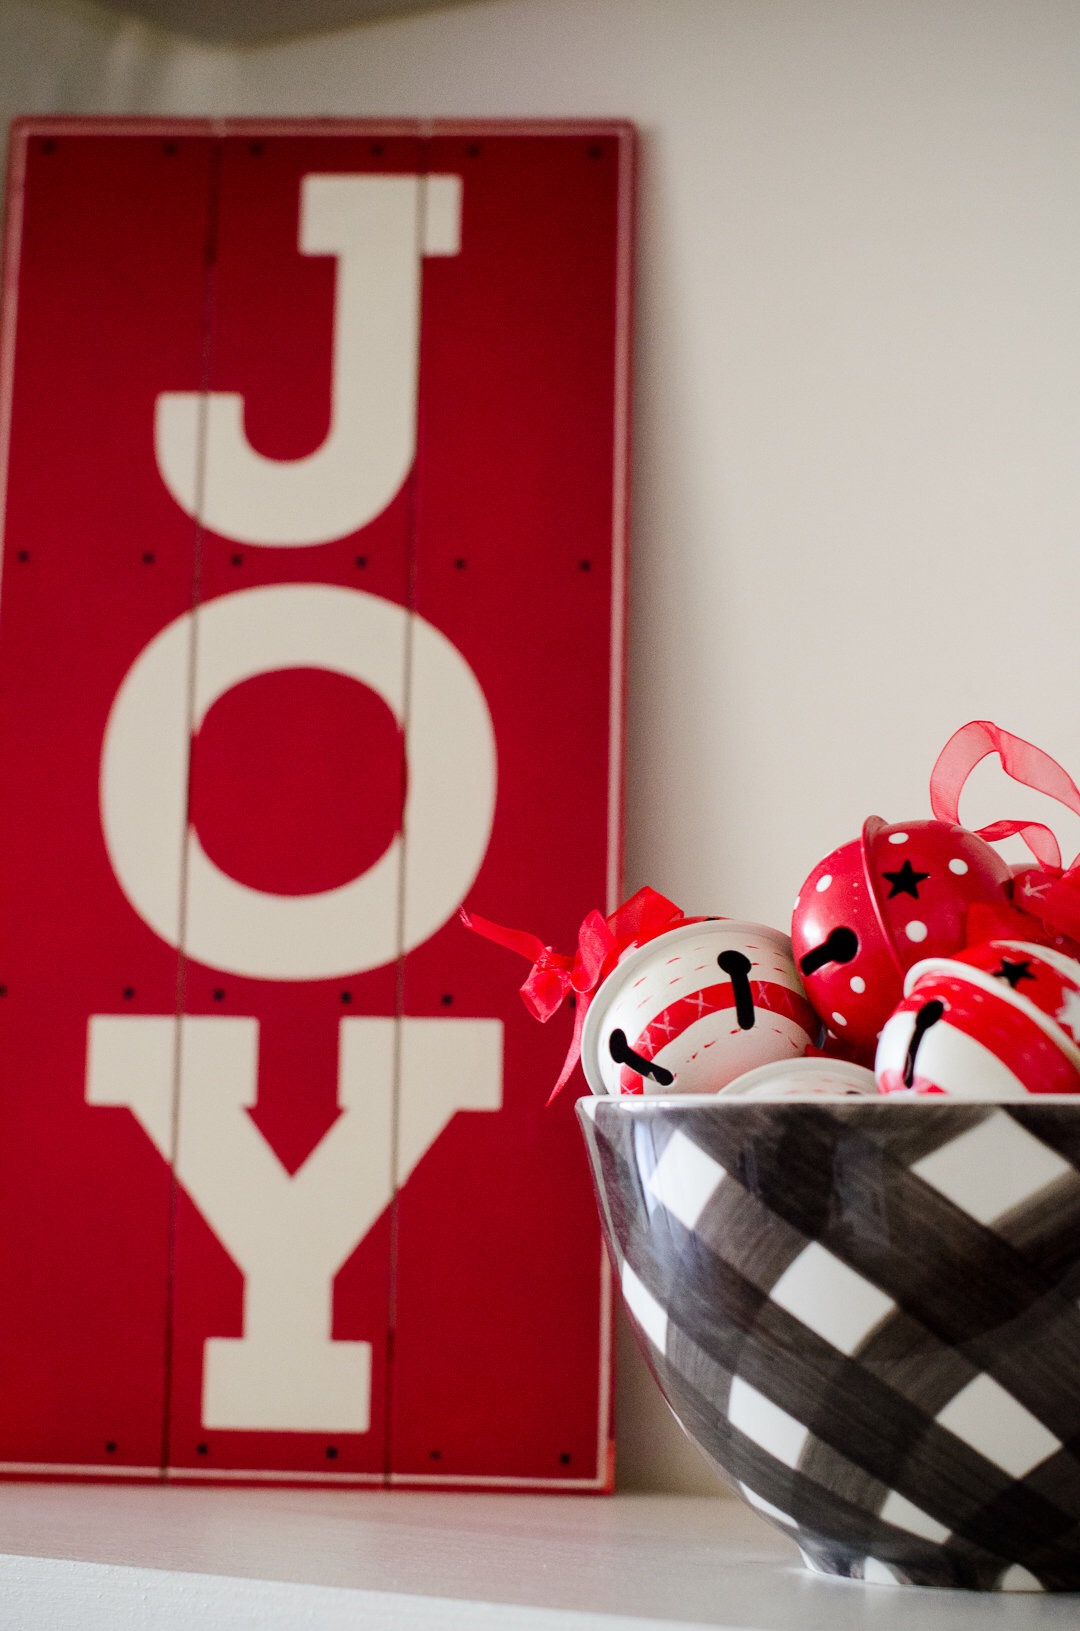 Love the buffalo check and red theme of this Christmas party! See more holiday party inspiration from Austin based party stylist Mint Event Design at www.minteventdesign.com #holidayparty #holidays #partyideas #christmasparty #holidaypartyideas #buffaloplaid #woodensign